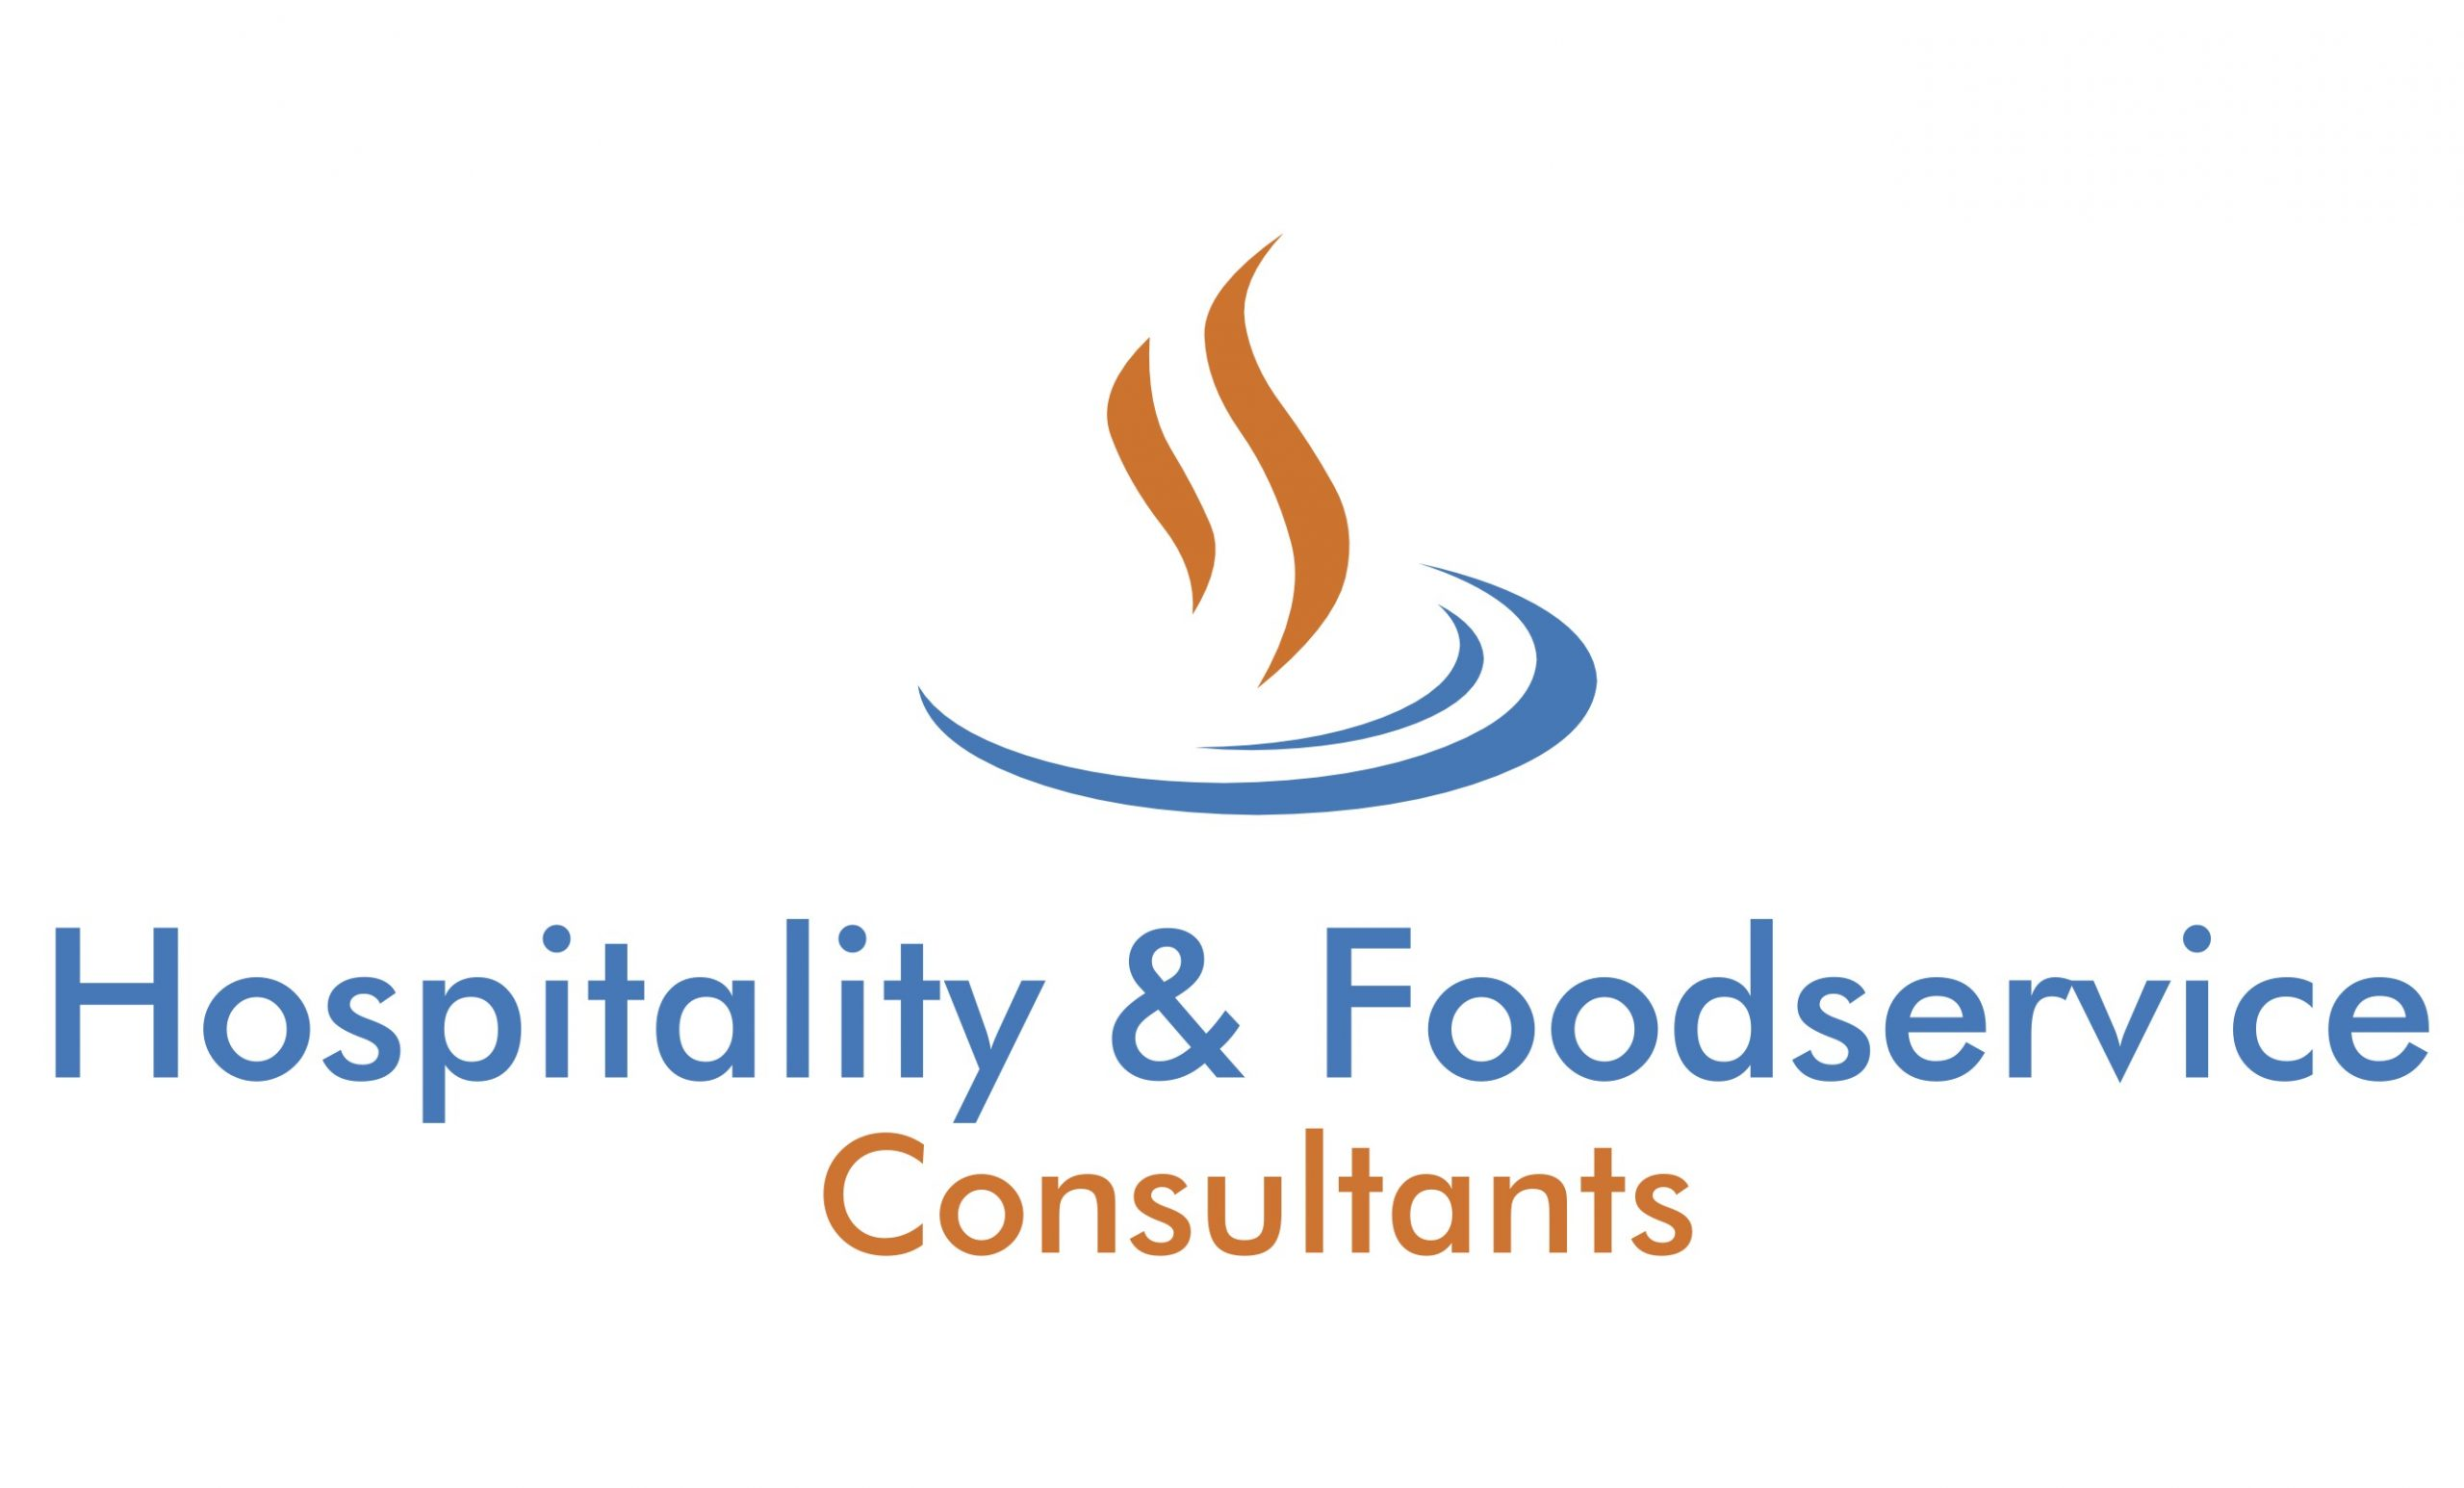 Hospitality & Foodservice Consultants